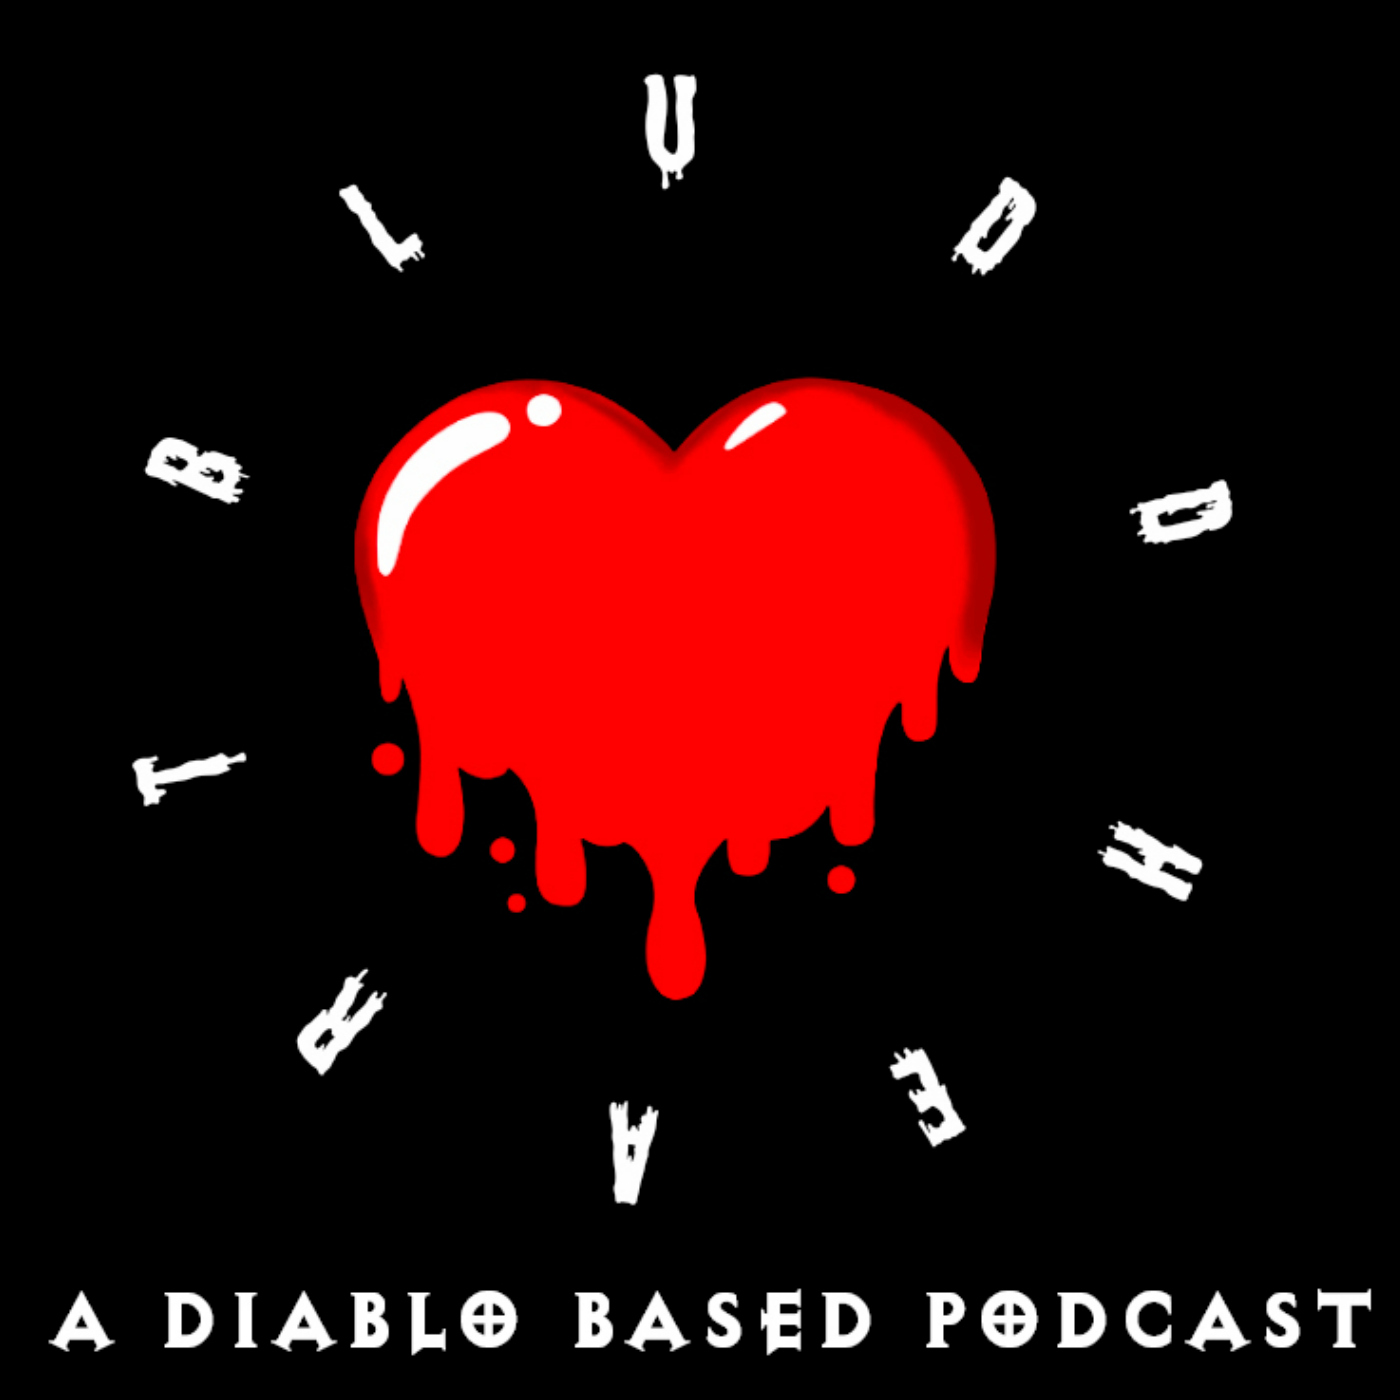 The Bludd Heart Podcast